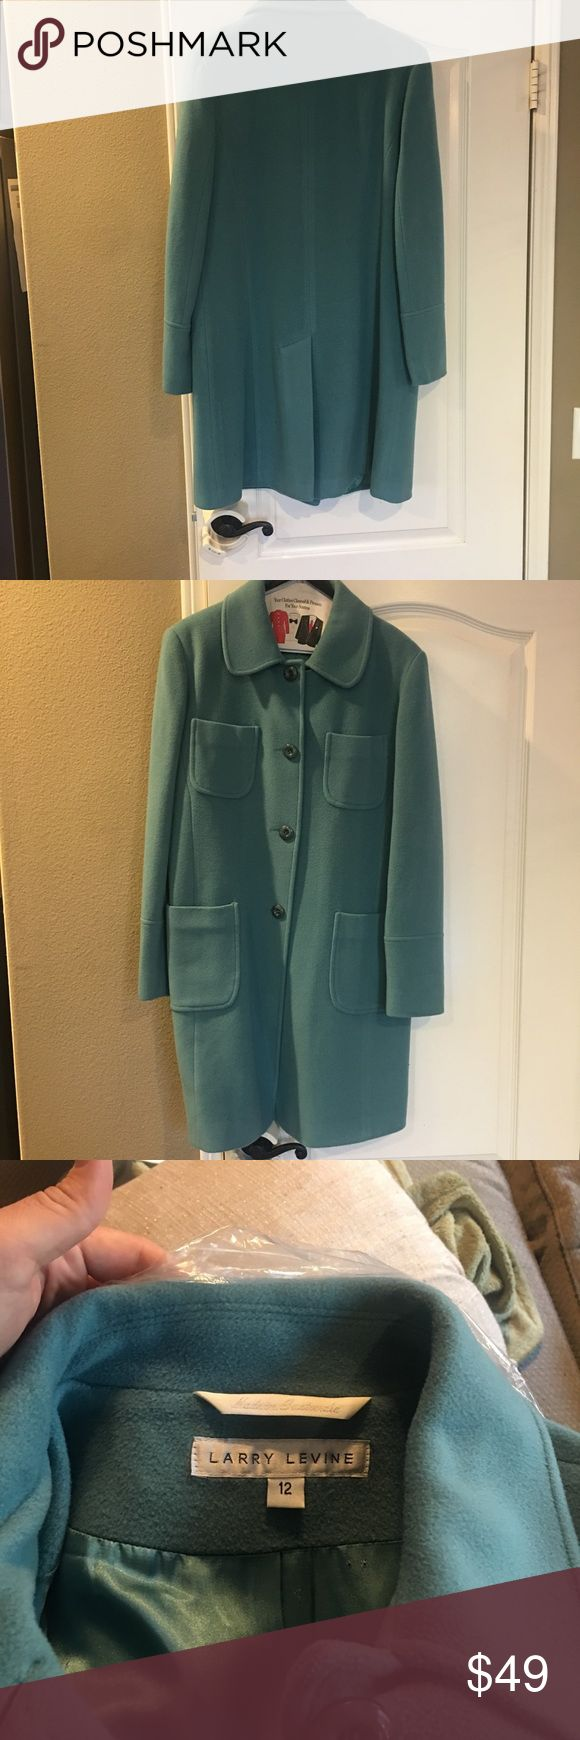 Wool knee length coat 100% merino wool teal blue knee length coat. Beautiful condition. Only worn a few times. Very warm. Women's size 12 Larry Levine Jackets & Coats Pea Coats